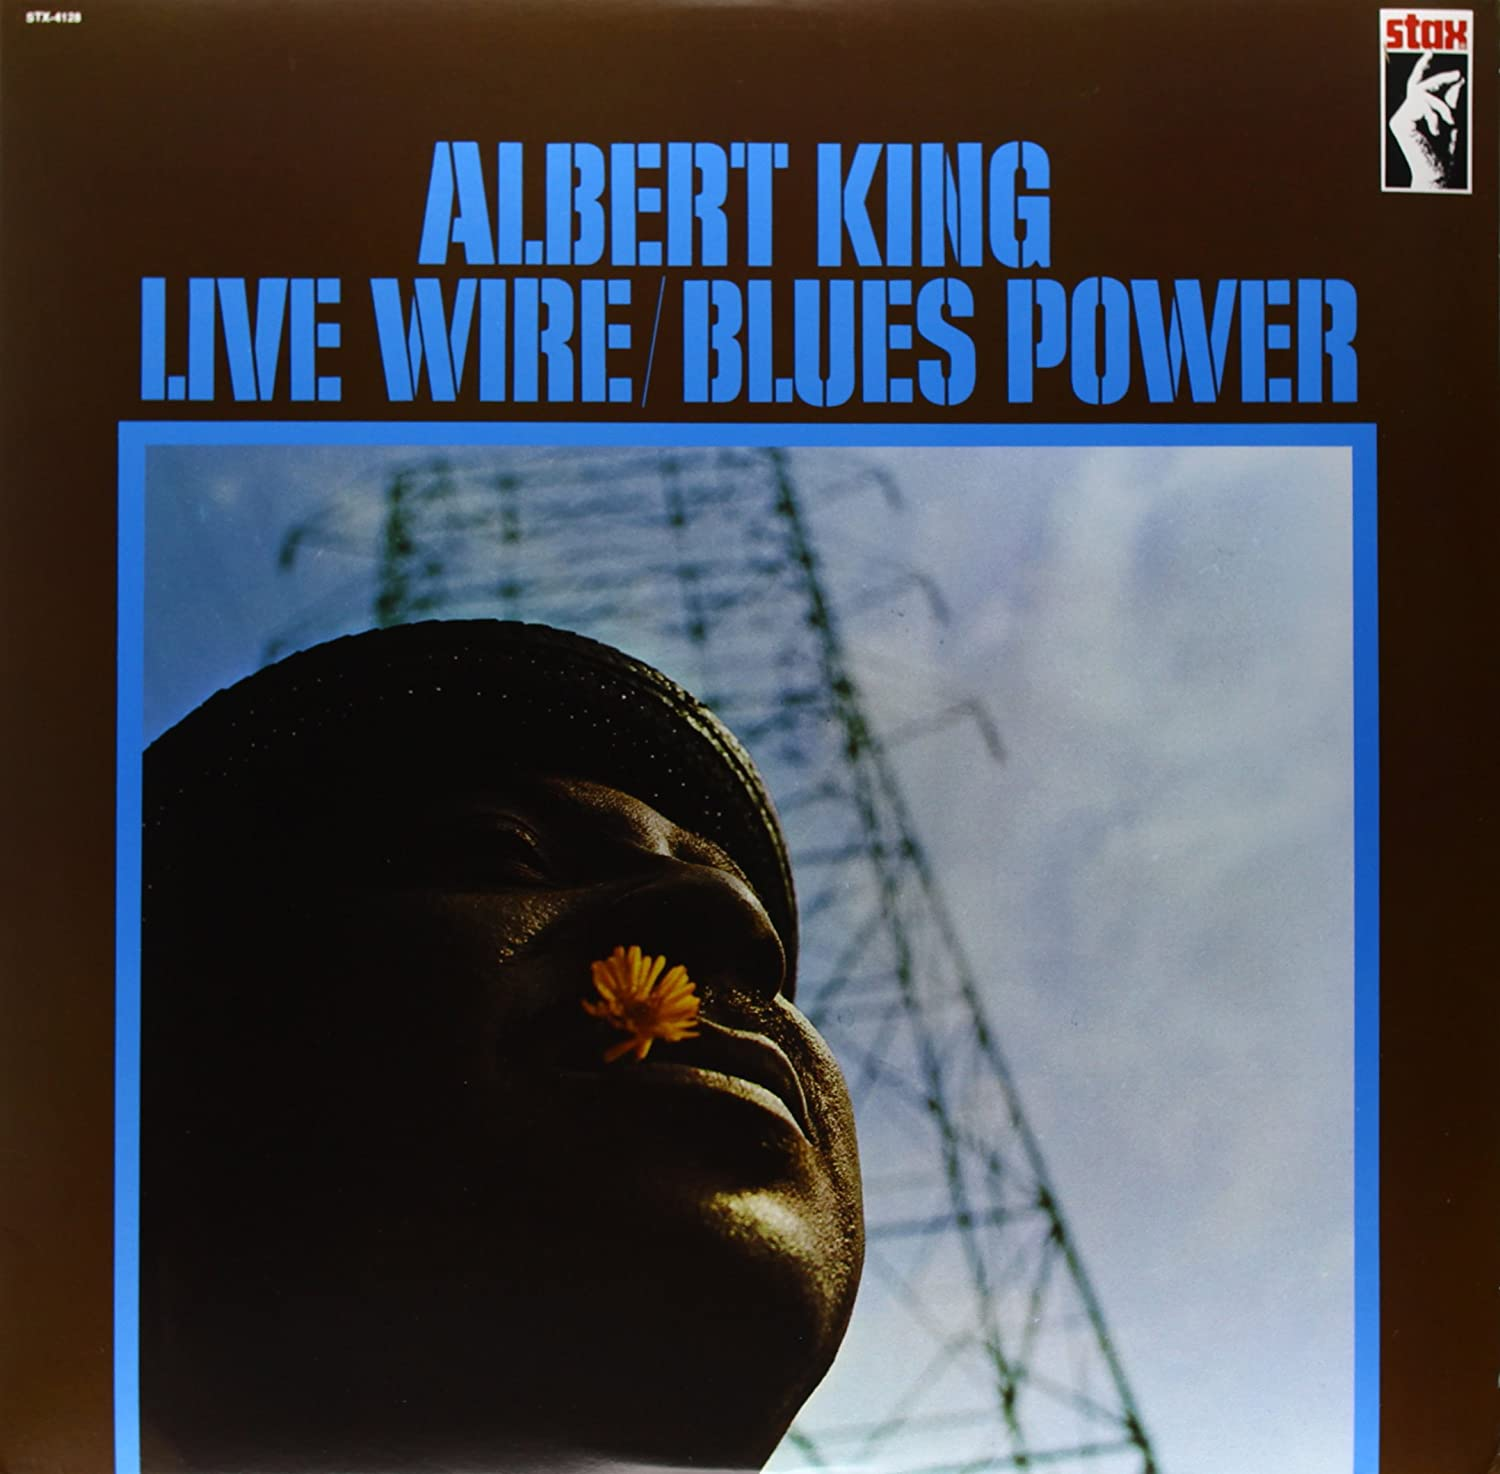 Live Wire / Blues Power [VINYL]: Amazon.co.uk: Music